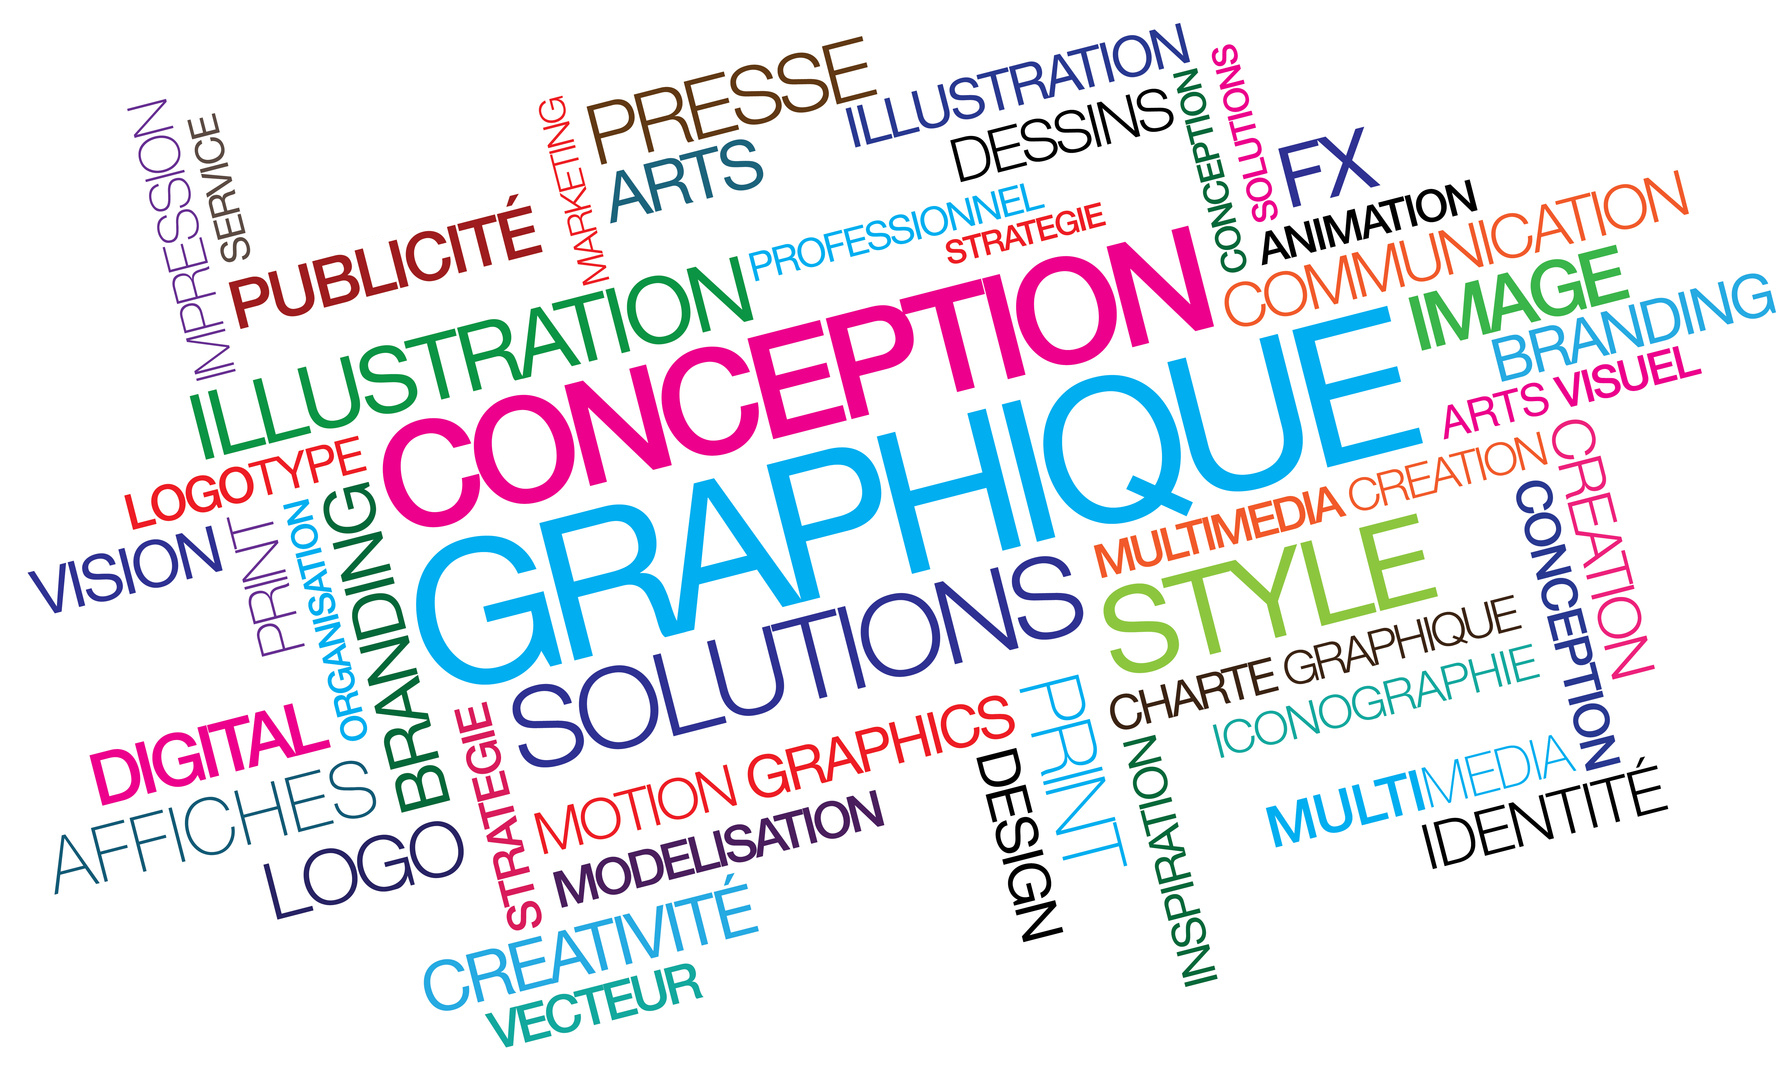 Conception graphique